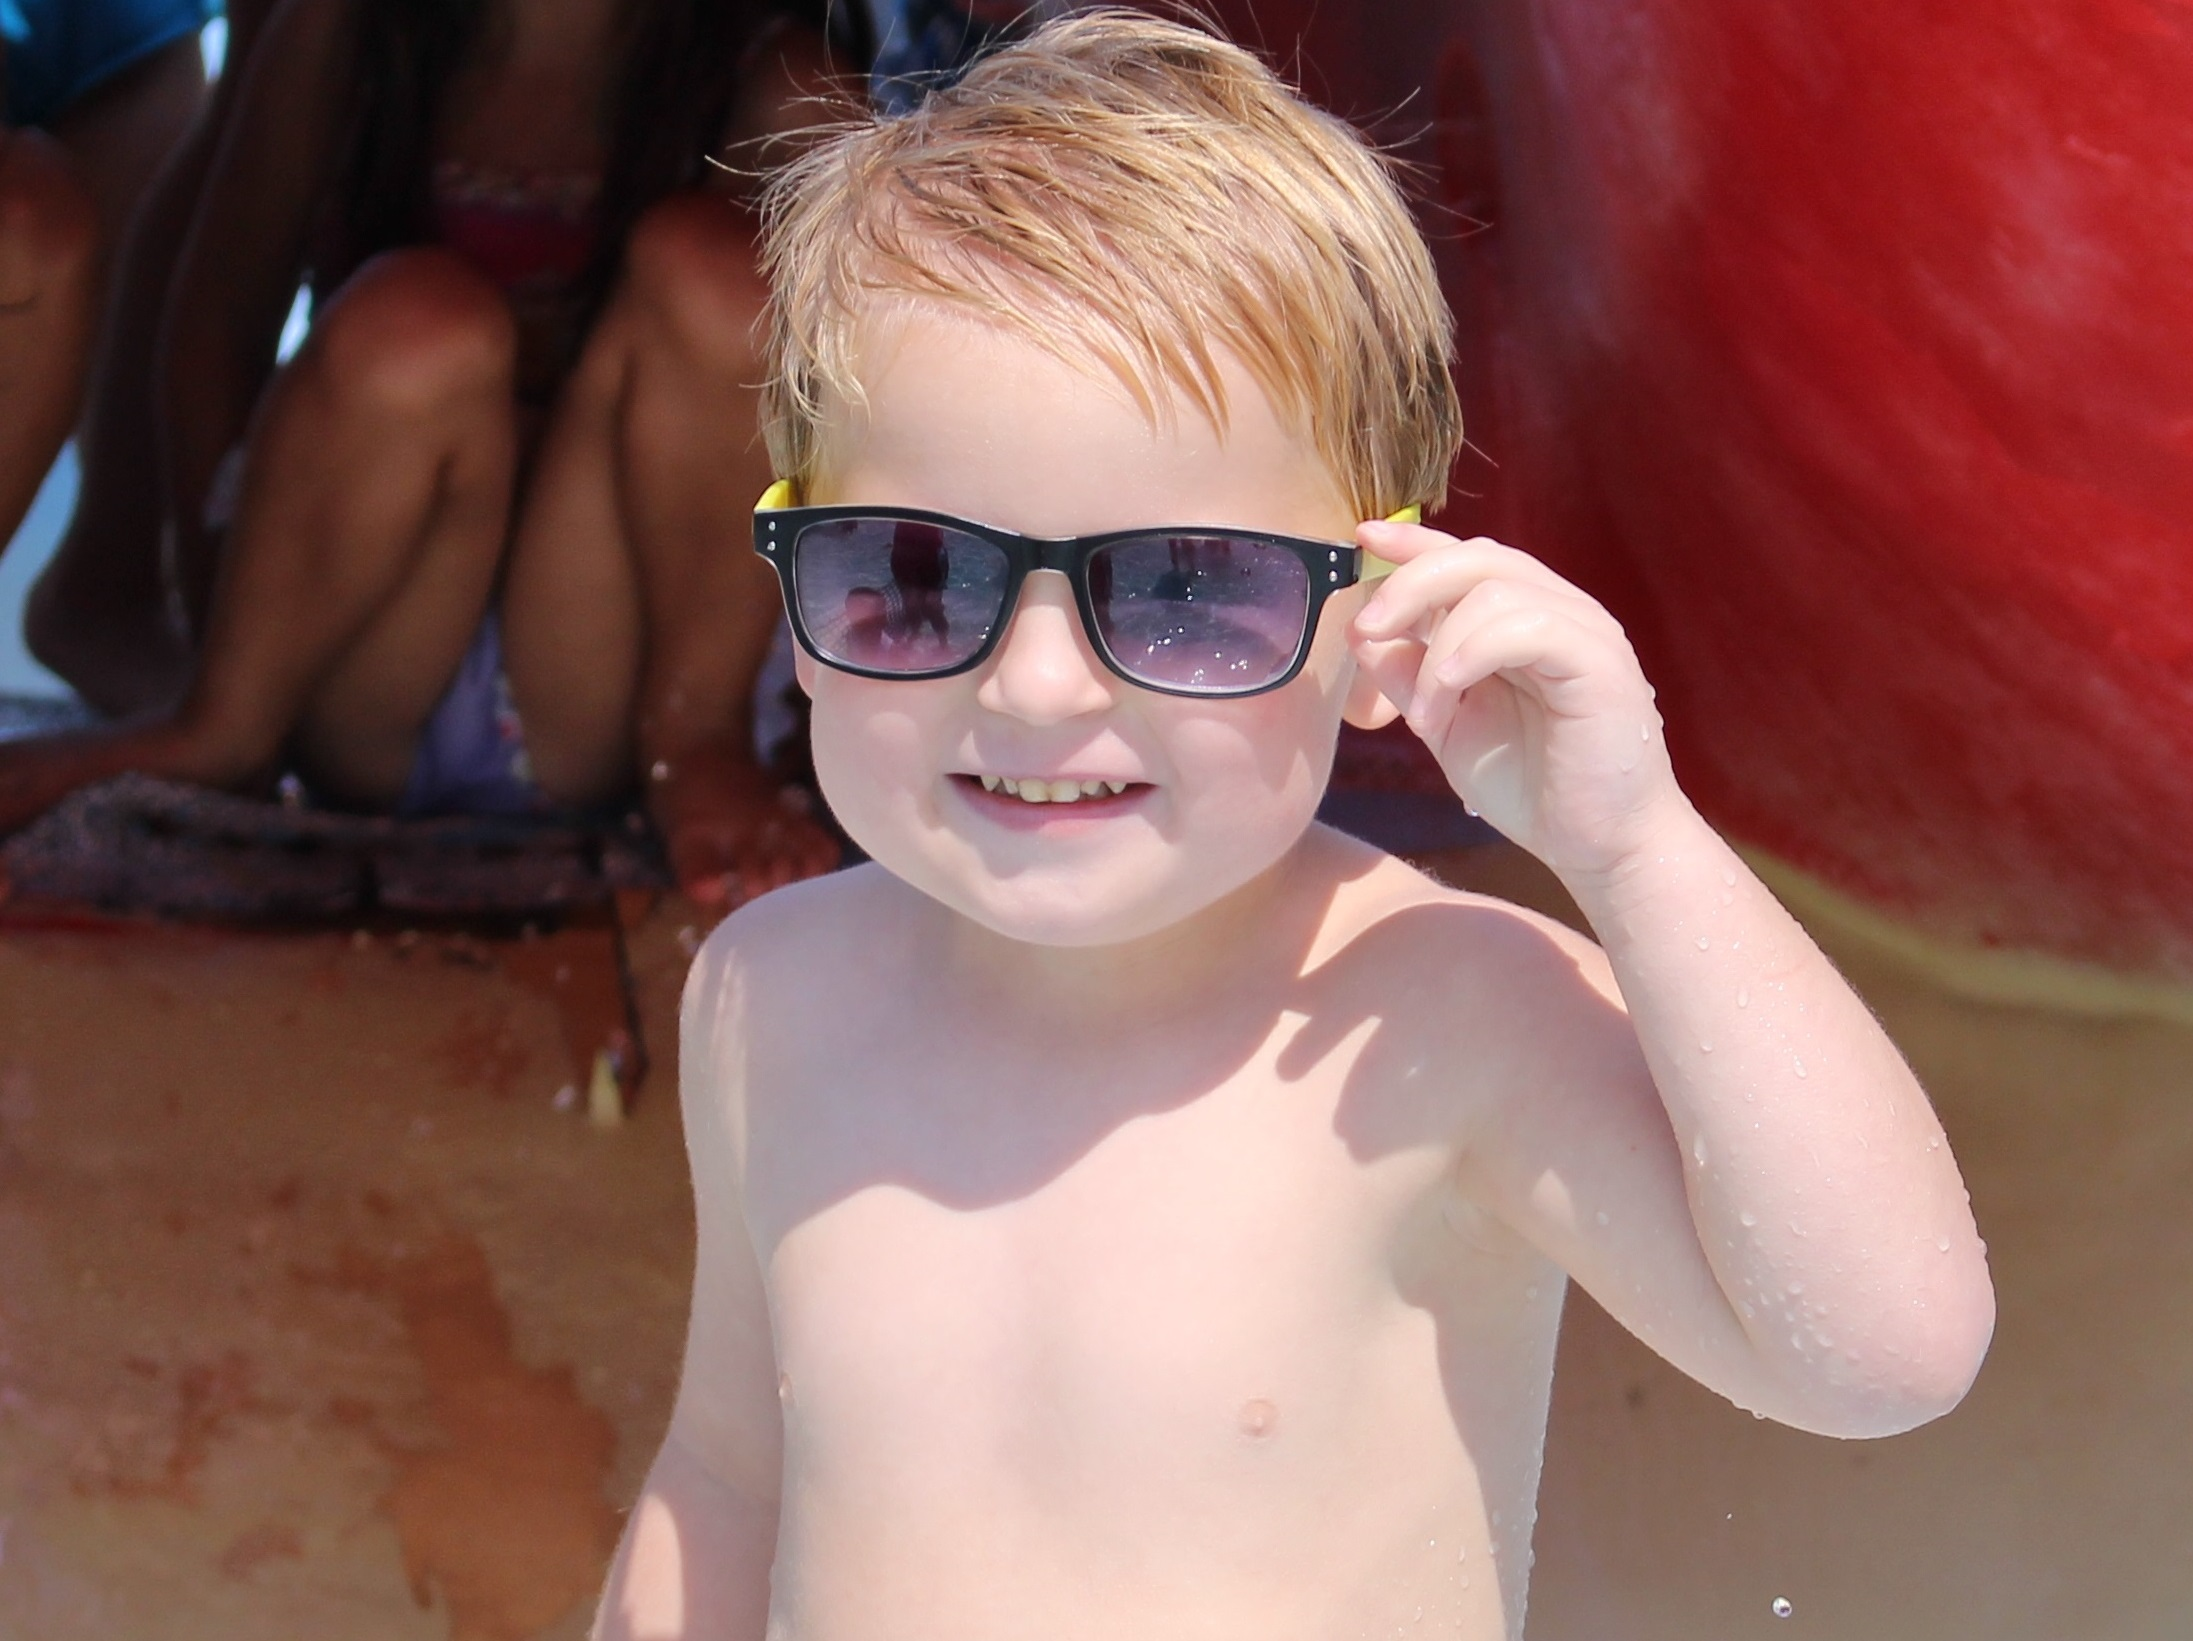 Little boy wearing sunglasses smiling in a happy harbor pool.